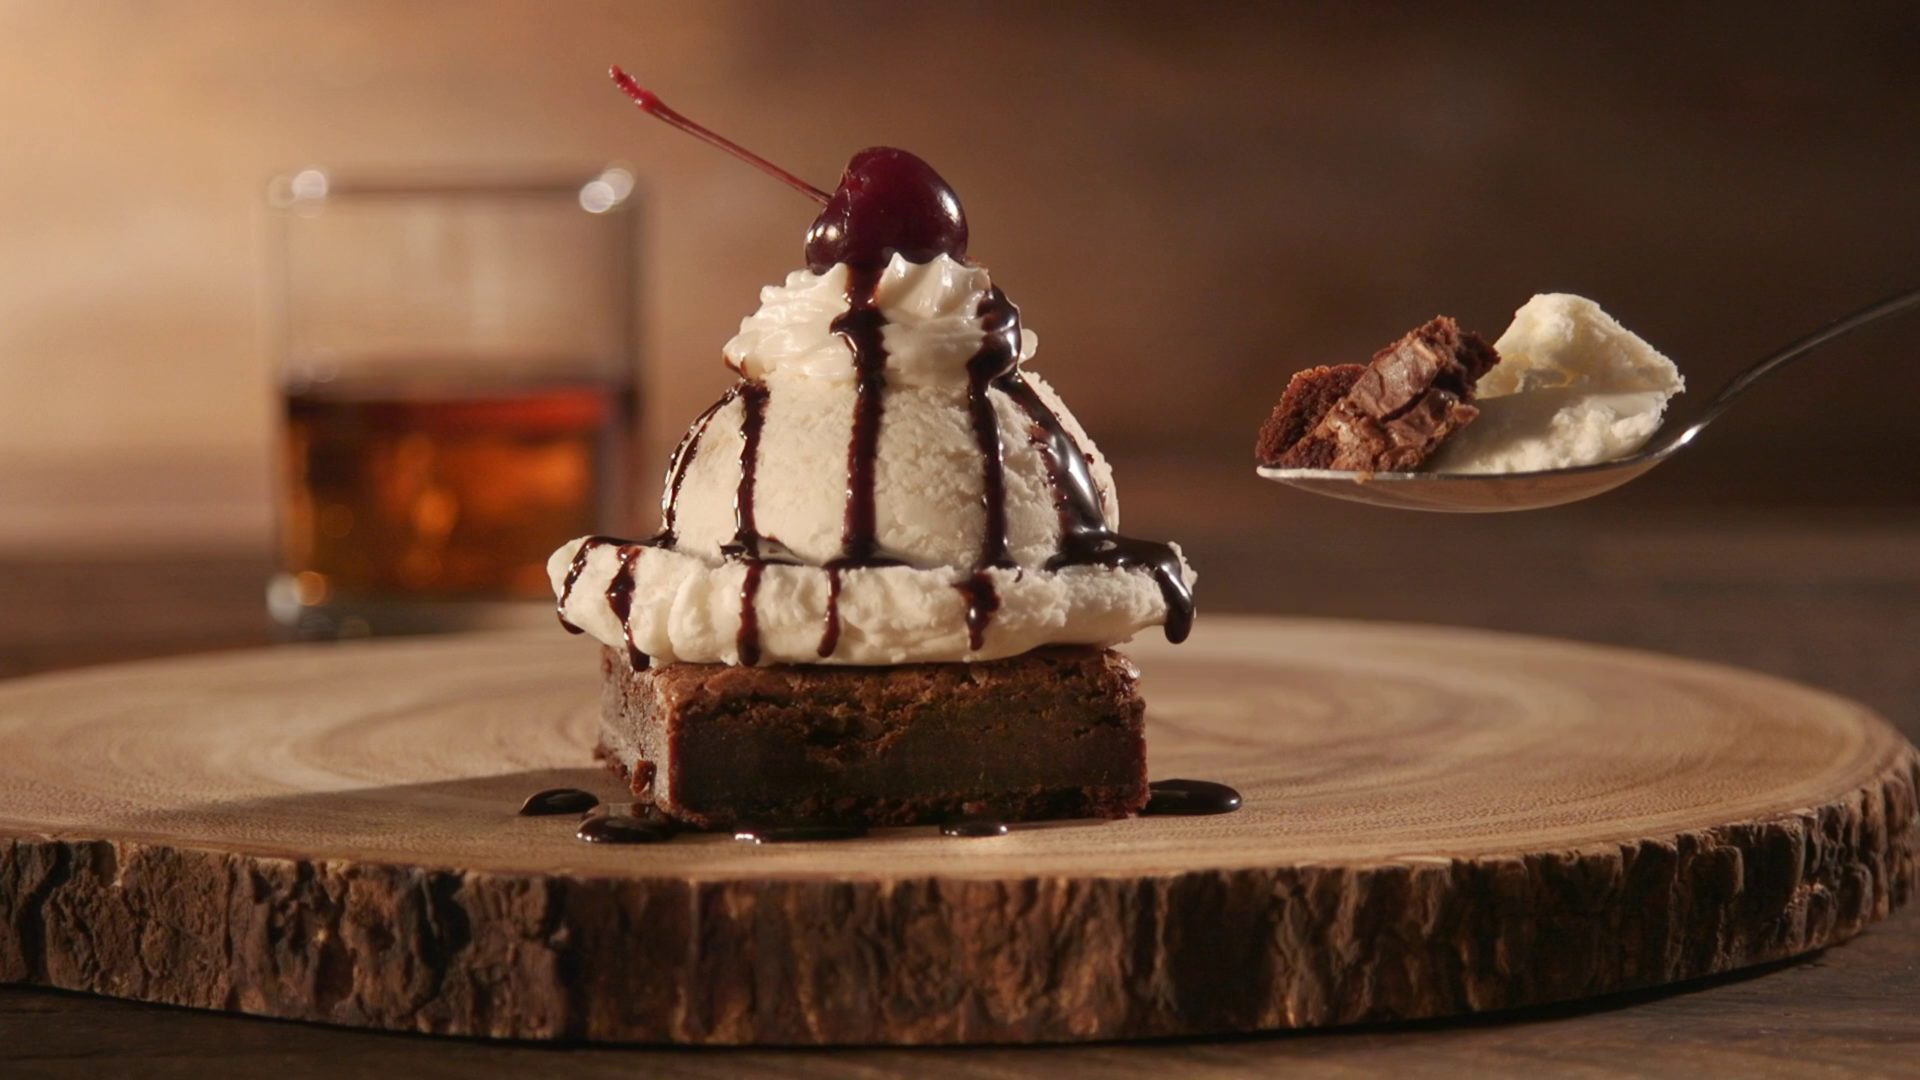 Food Hd Live Wallpapers New Tab Theme - Ice Cream Cinemagraph Gif , HD Wallpaper & Backgrounds